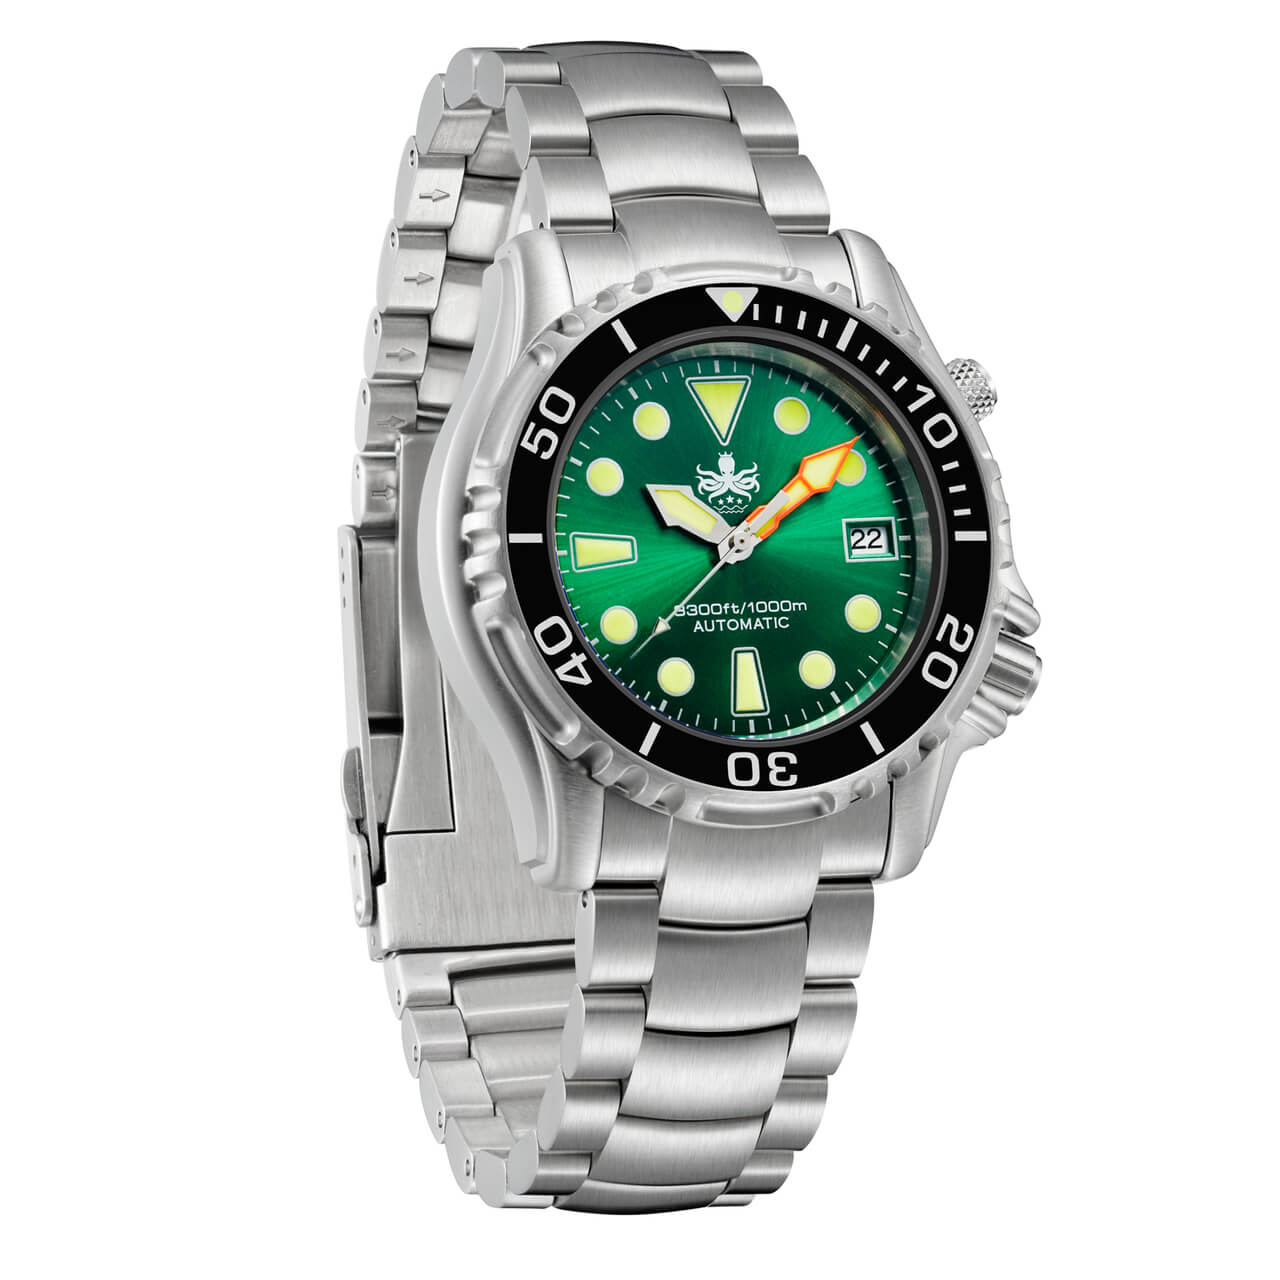 Phoibos ocean master py005a 1000m automatic professional - Oceanic dive watch ...